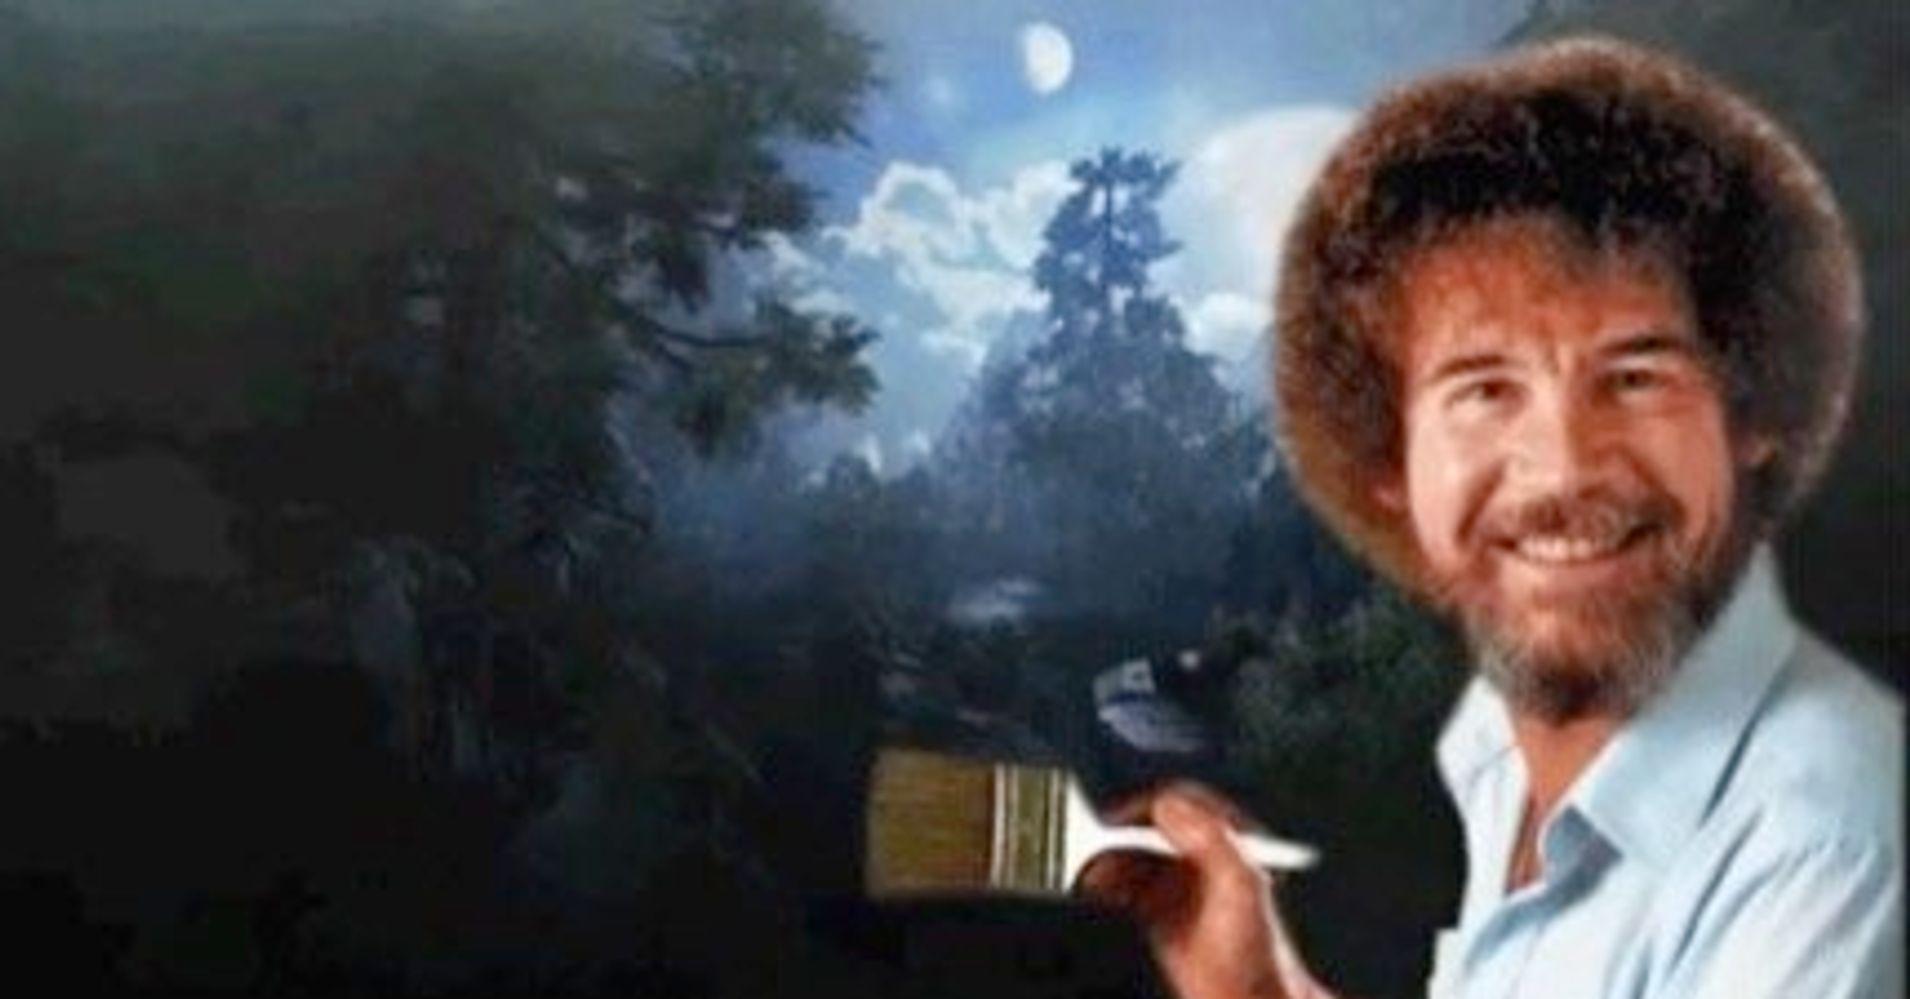 extremely calming bob ross episodes to get you through this